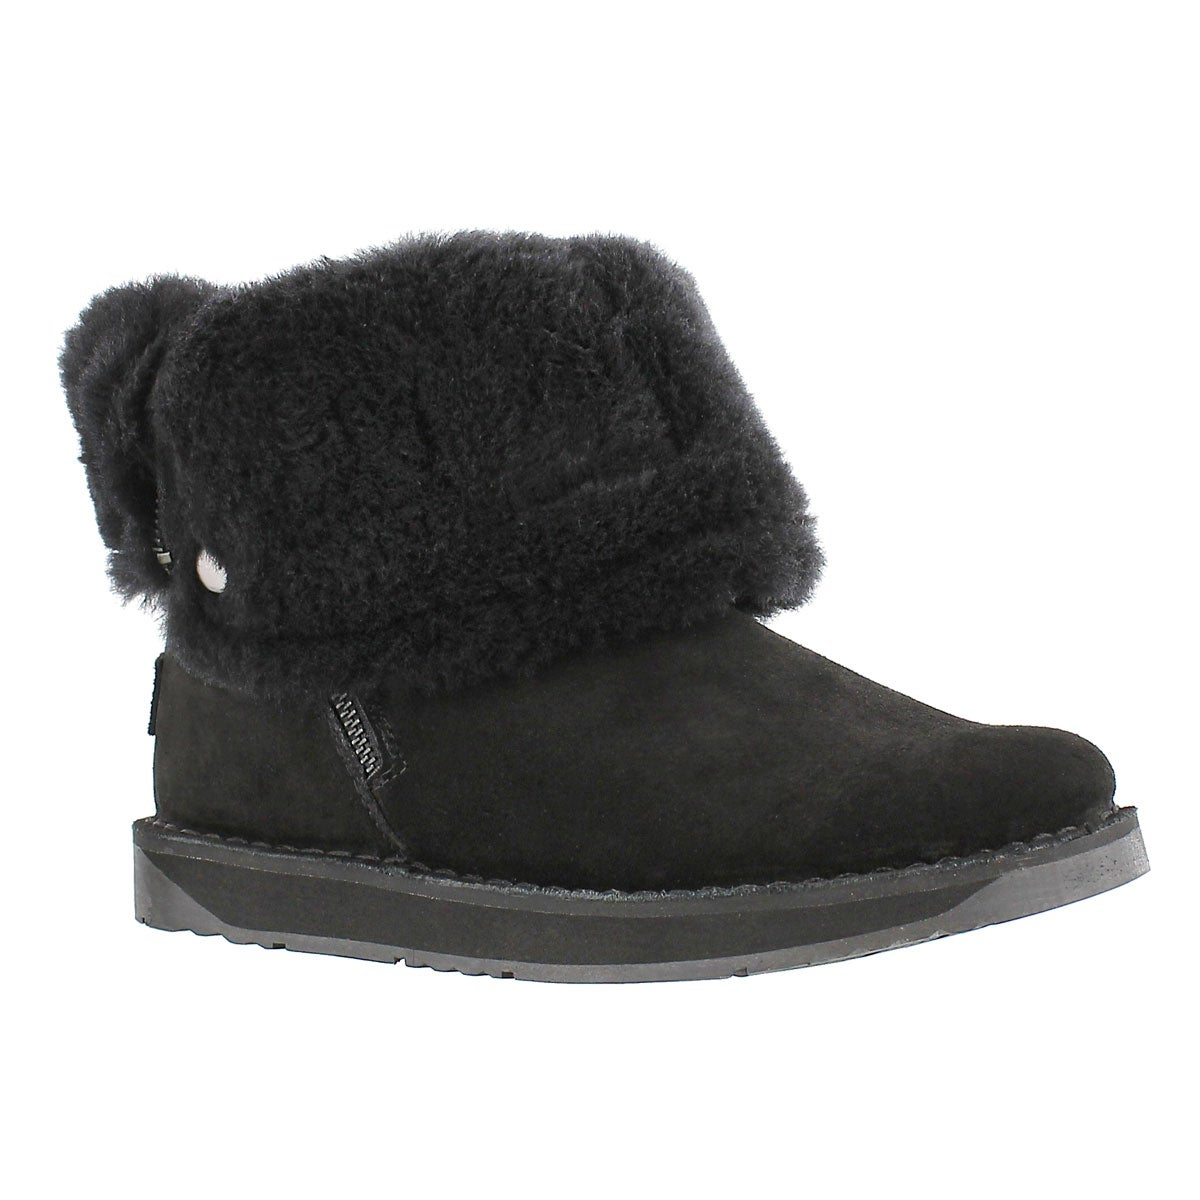 Lds Norway black suede zipper boot